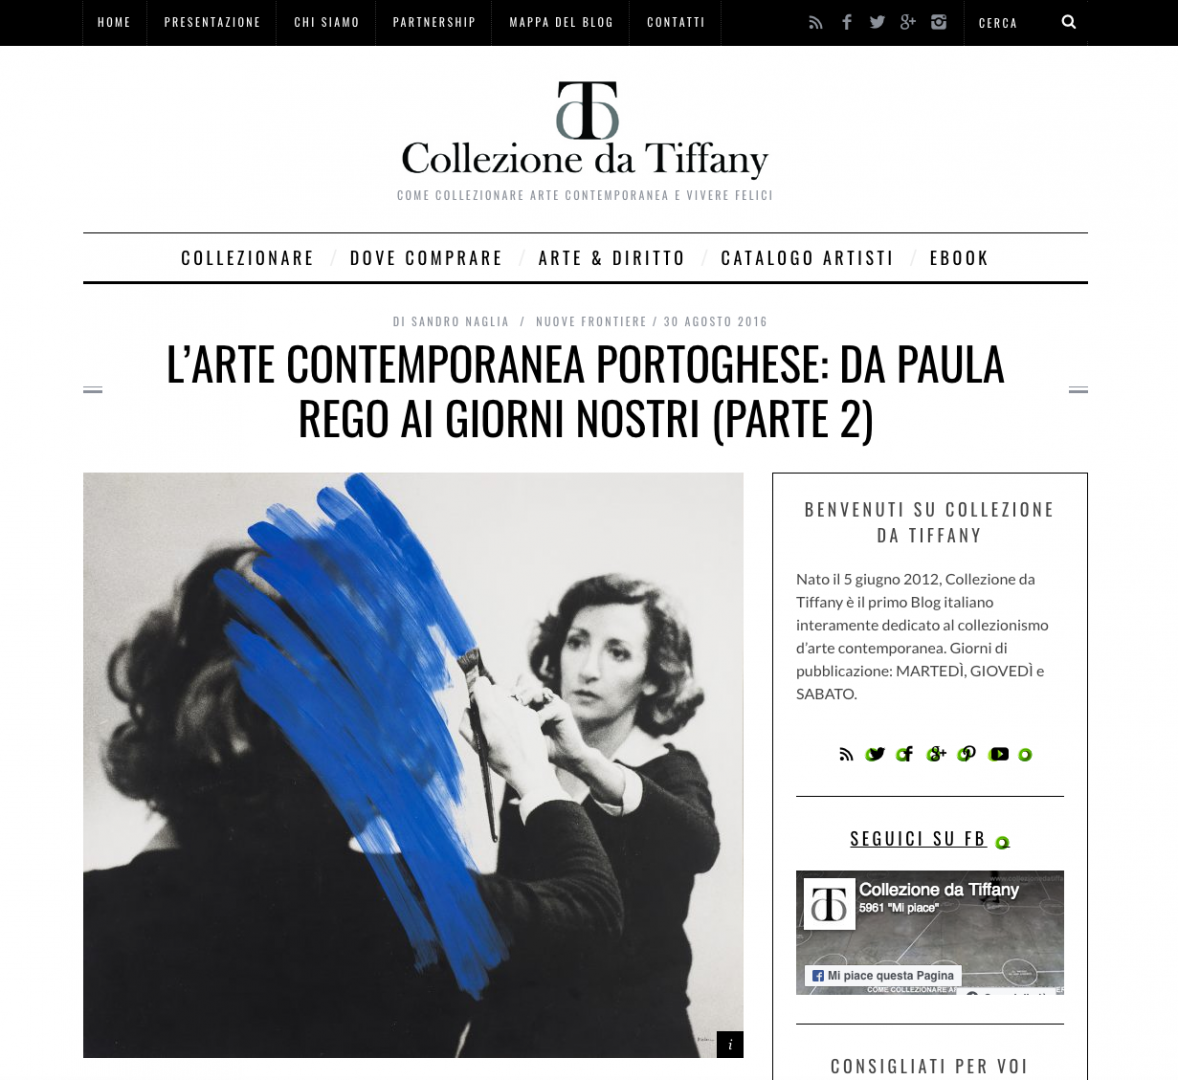 Carolina Piteira Press Collezione da Tiffany (1)